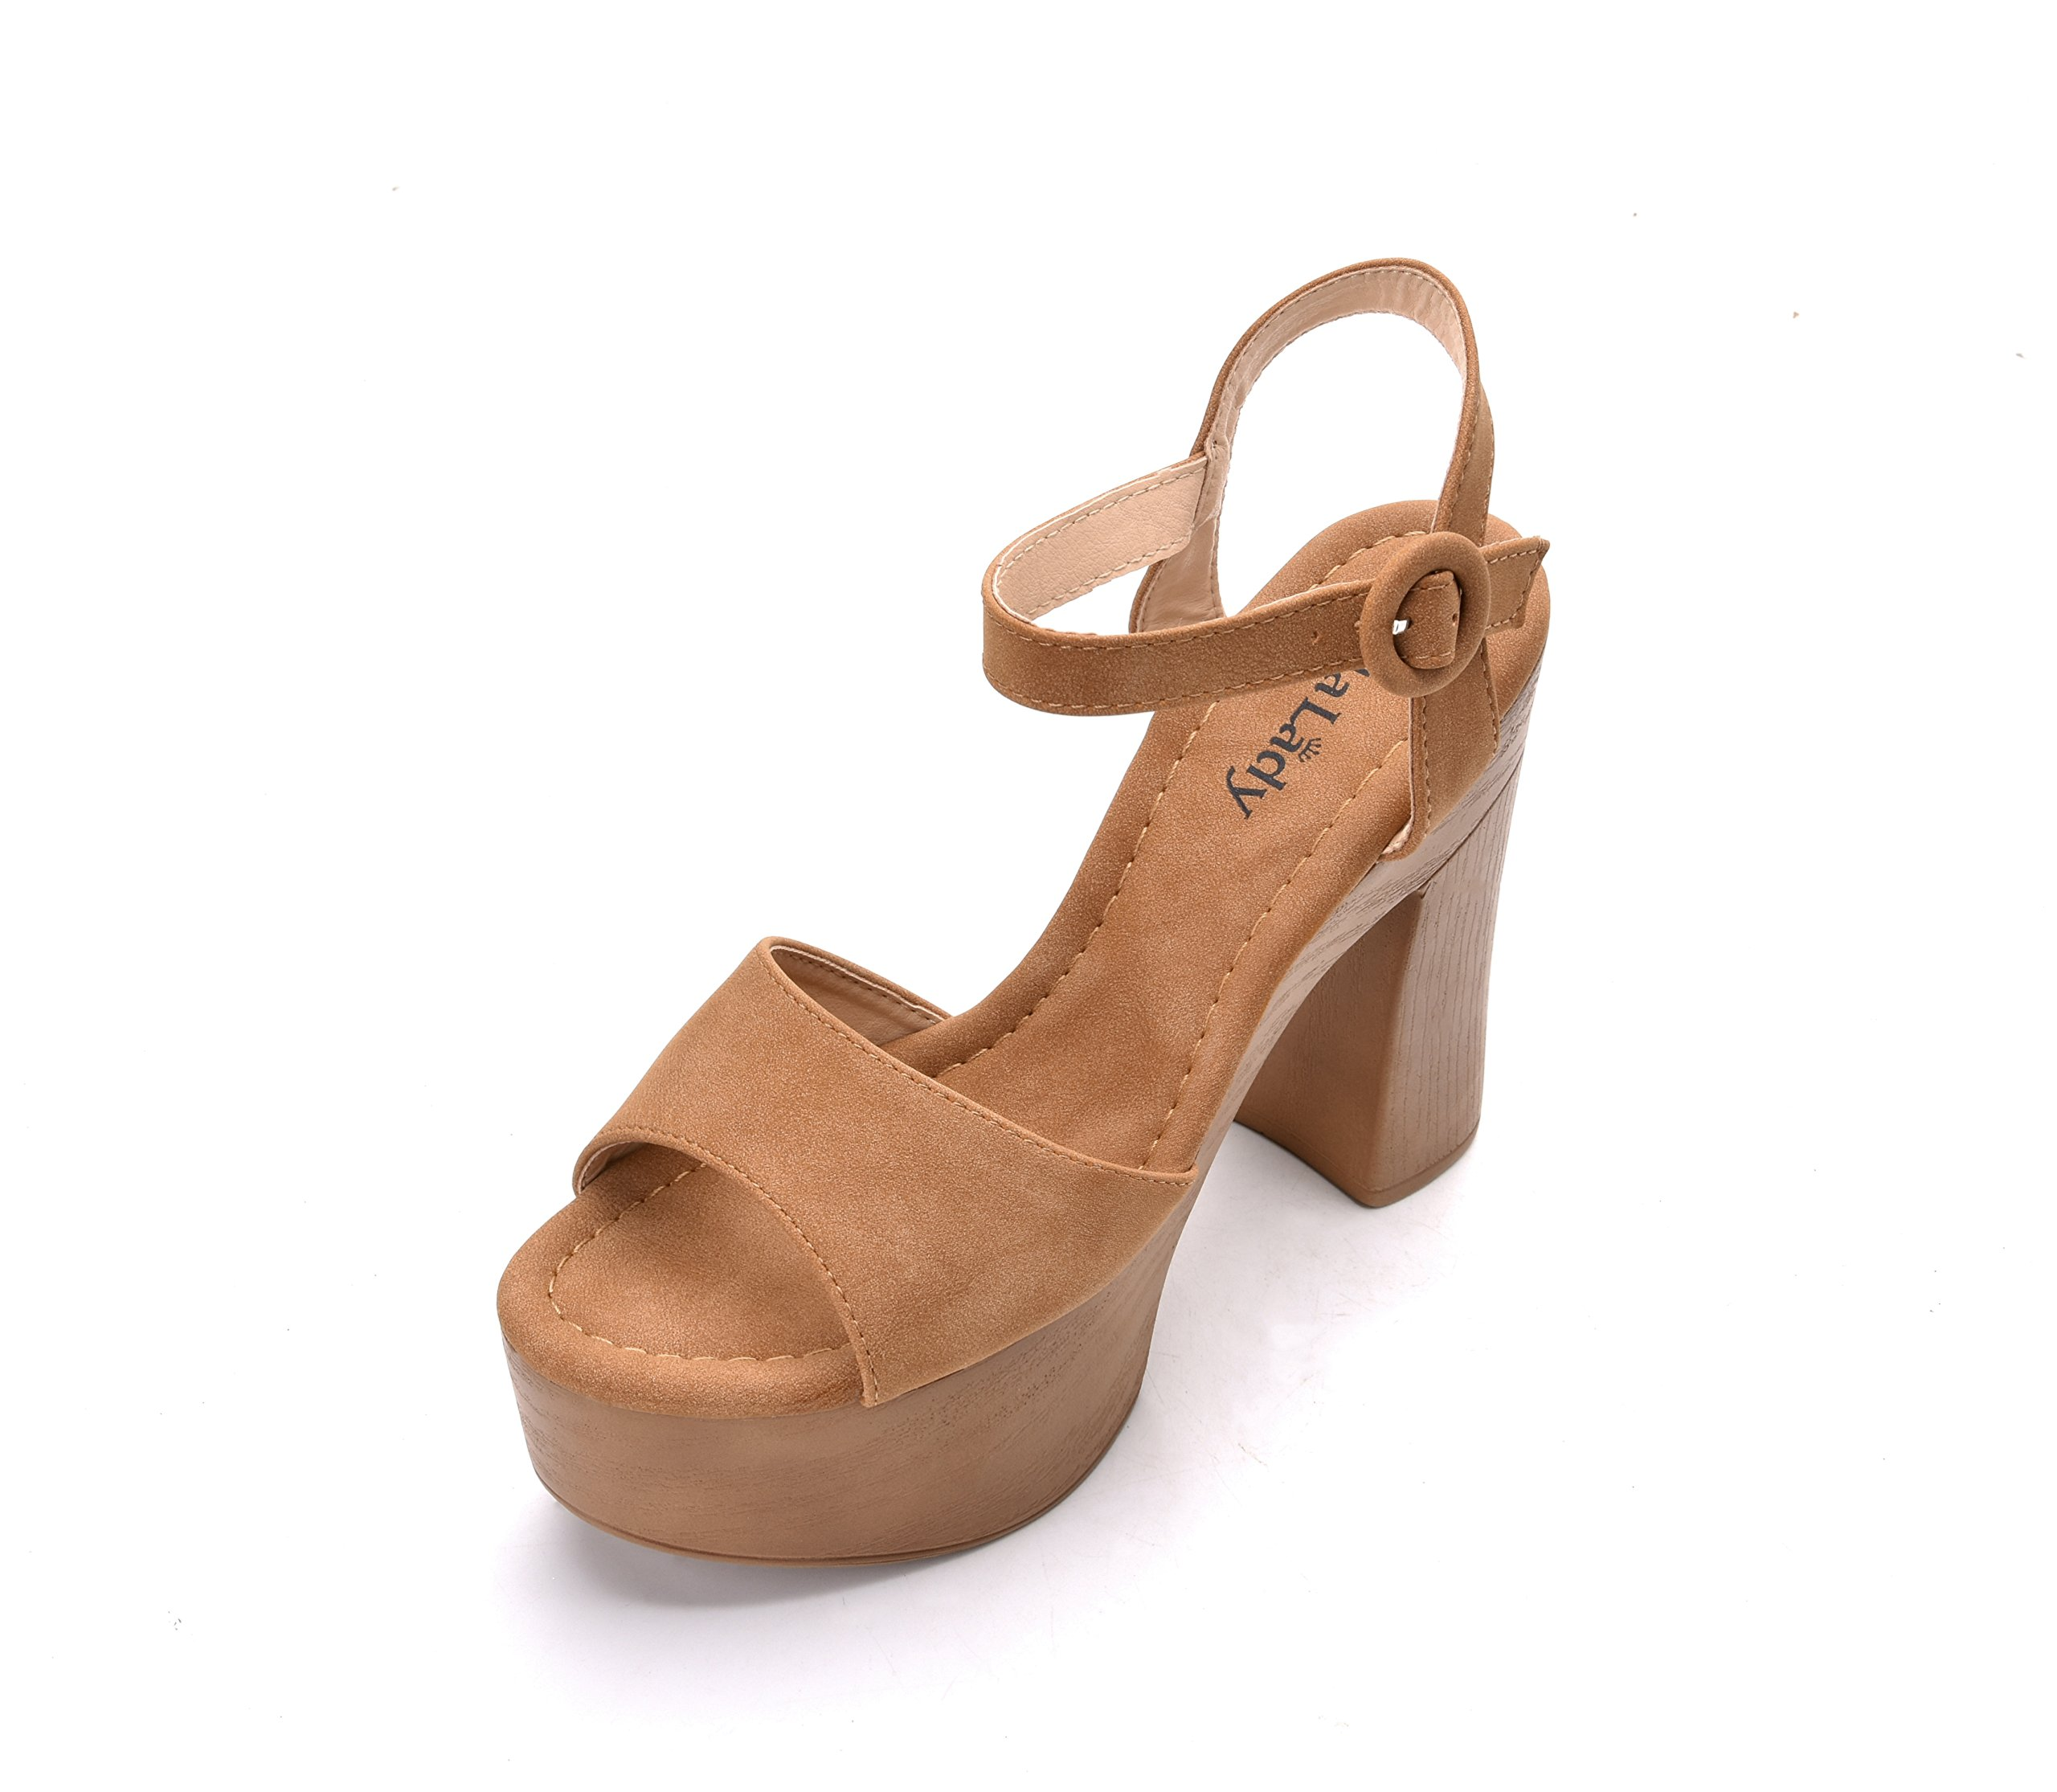 Evoking Chic Styles Ankle Strap Adjustable Buckle Chunky Heeled Sandals Platform Sole Shoes for Women, Loleta Camel Size 5.5